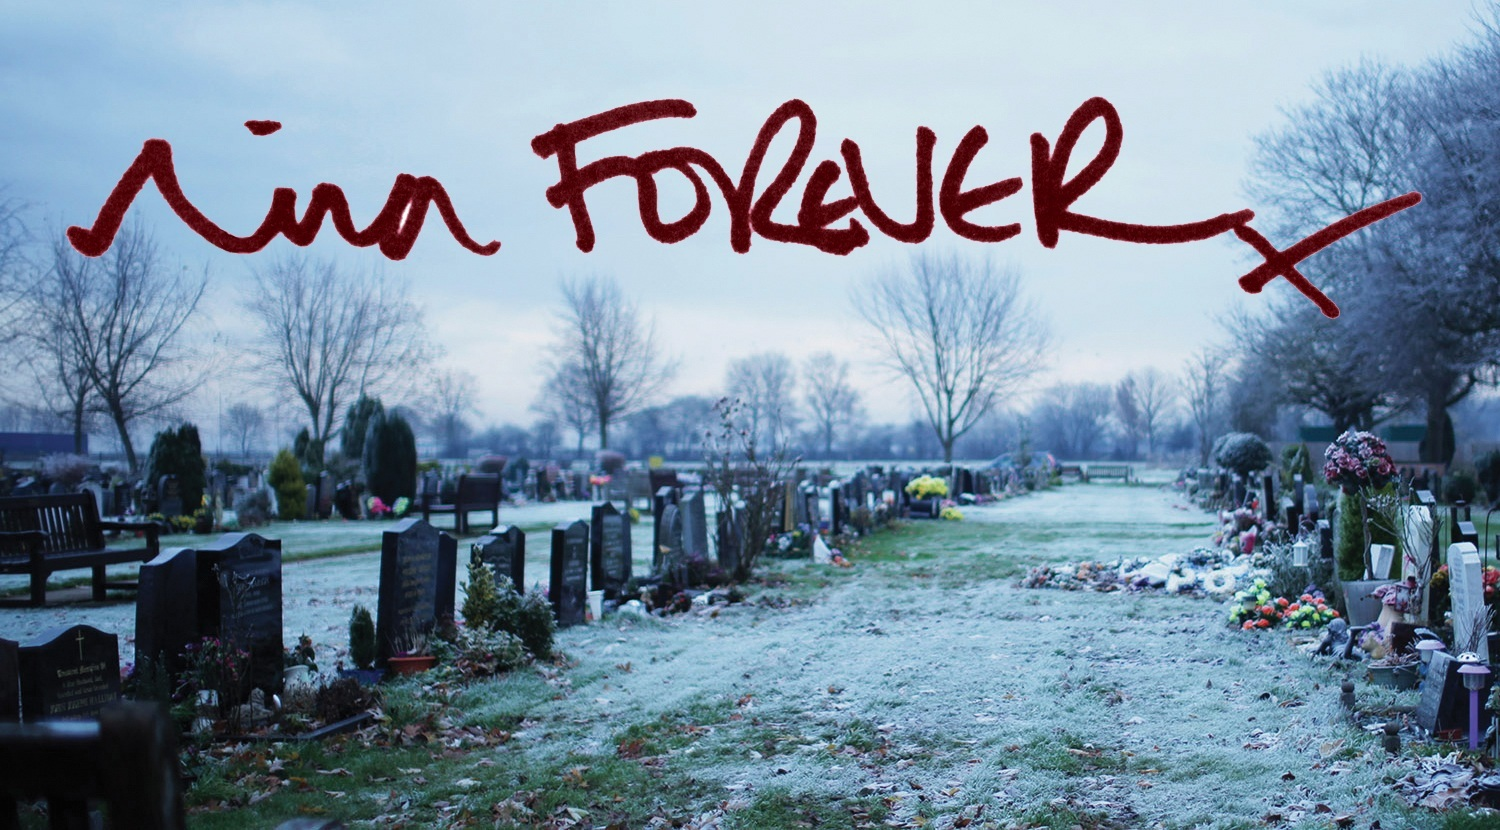 nina forever movie poster images 2015